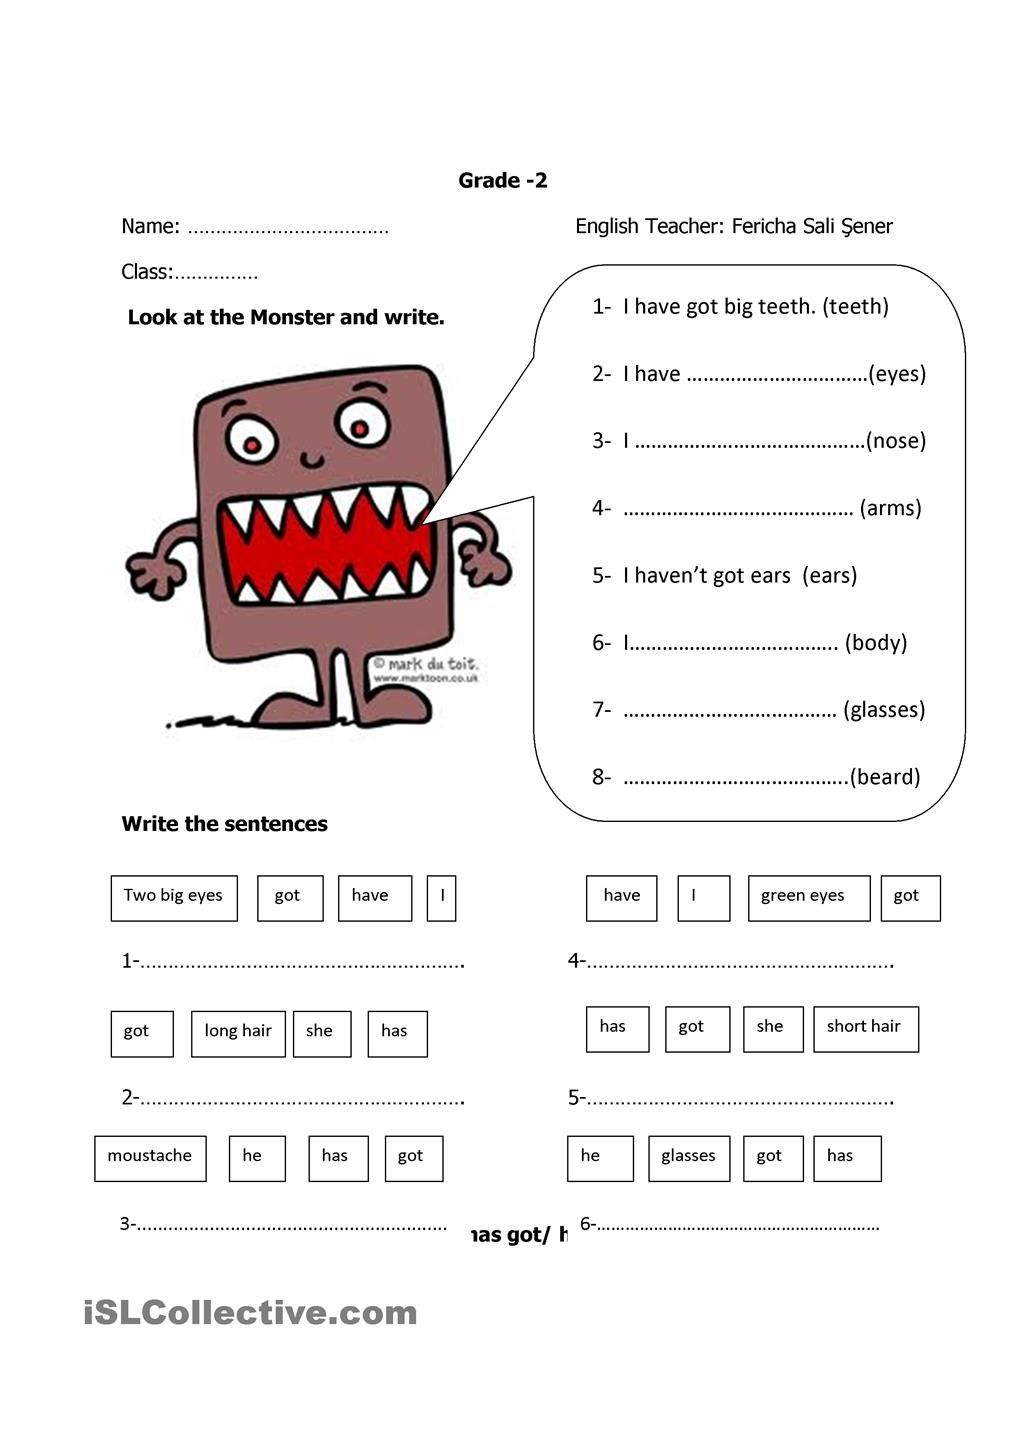 worksheet Has And Have Worksheets have got has literacy pinterest english worksheets and worksheet free esl printable made by teachers